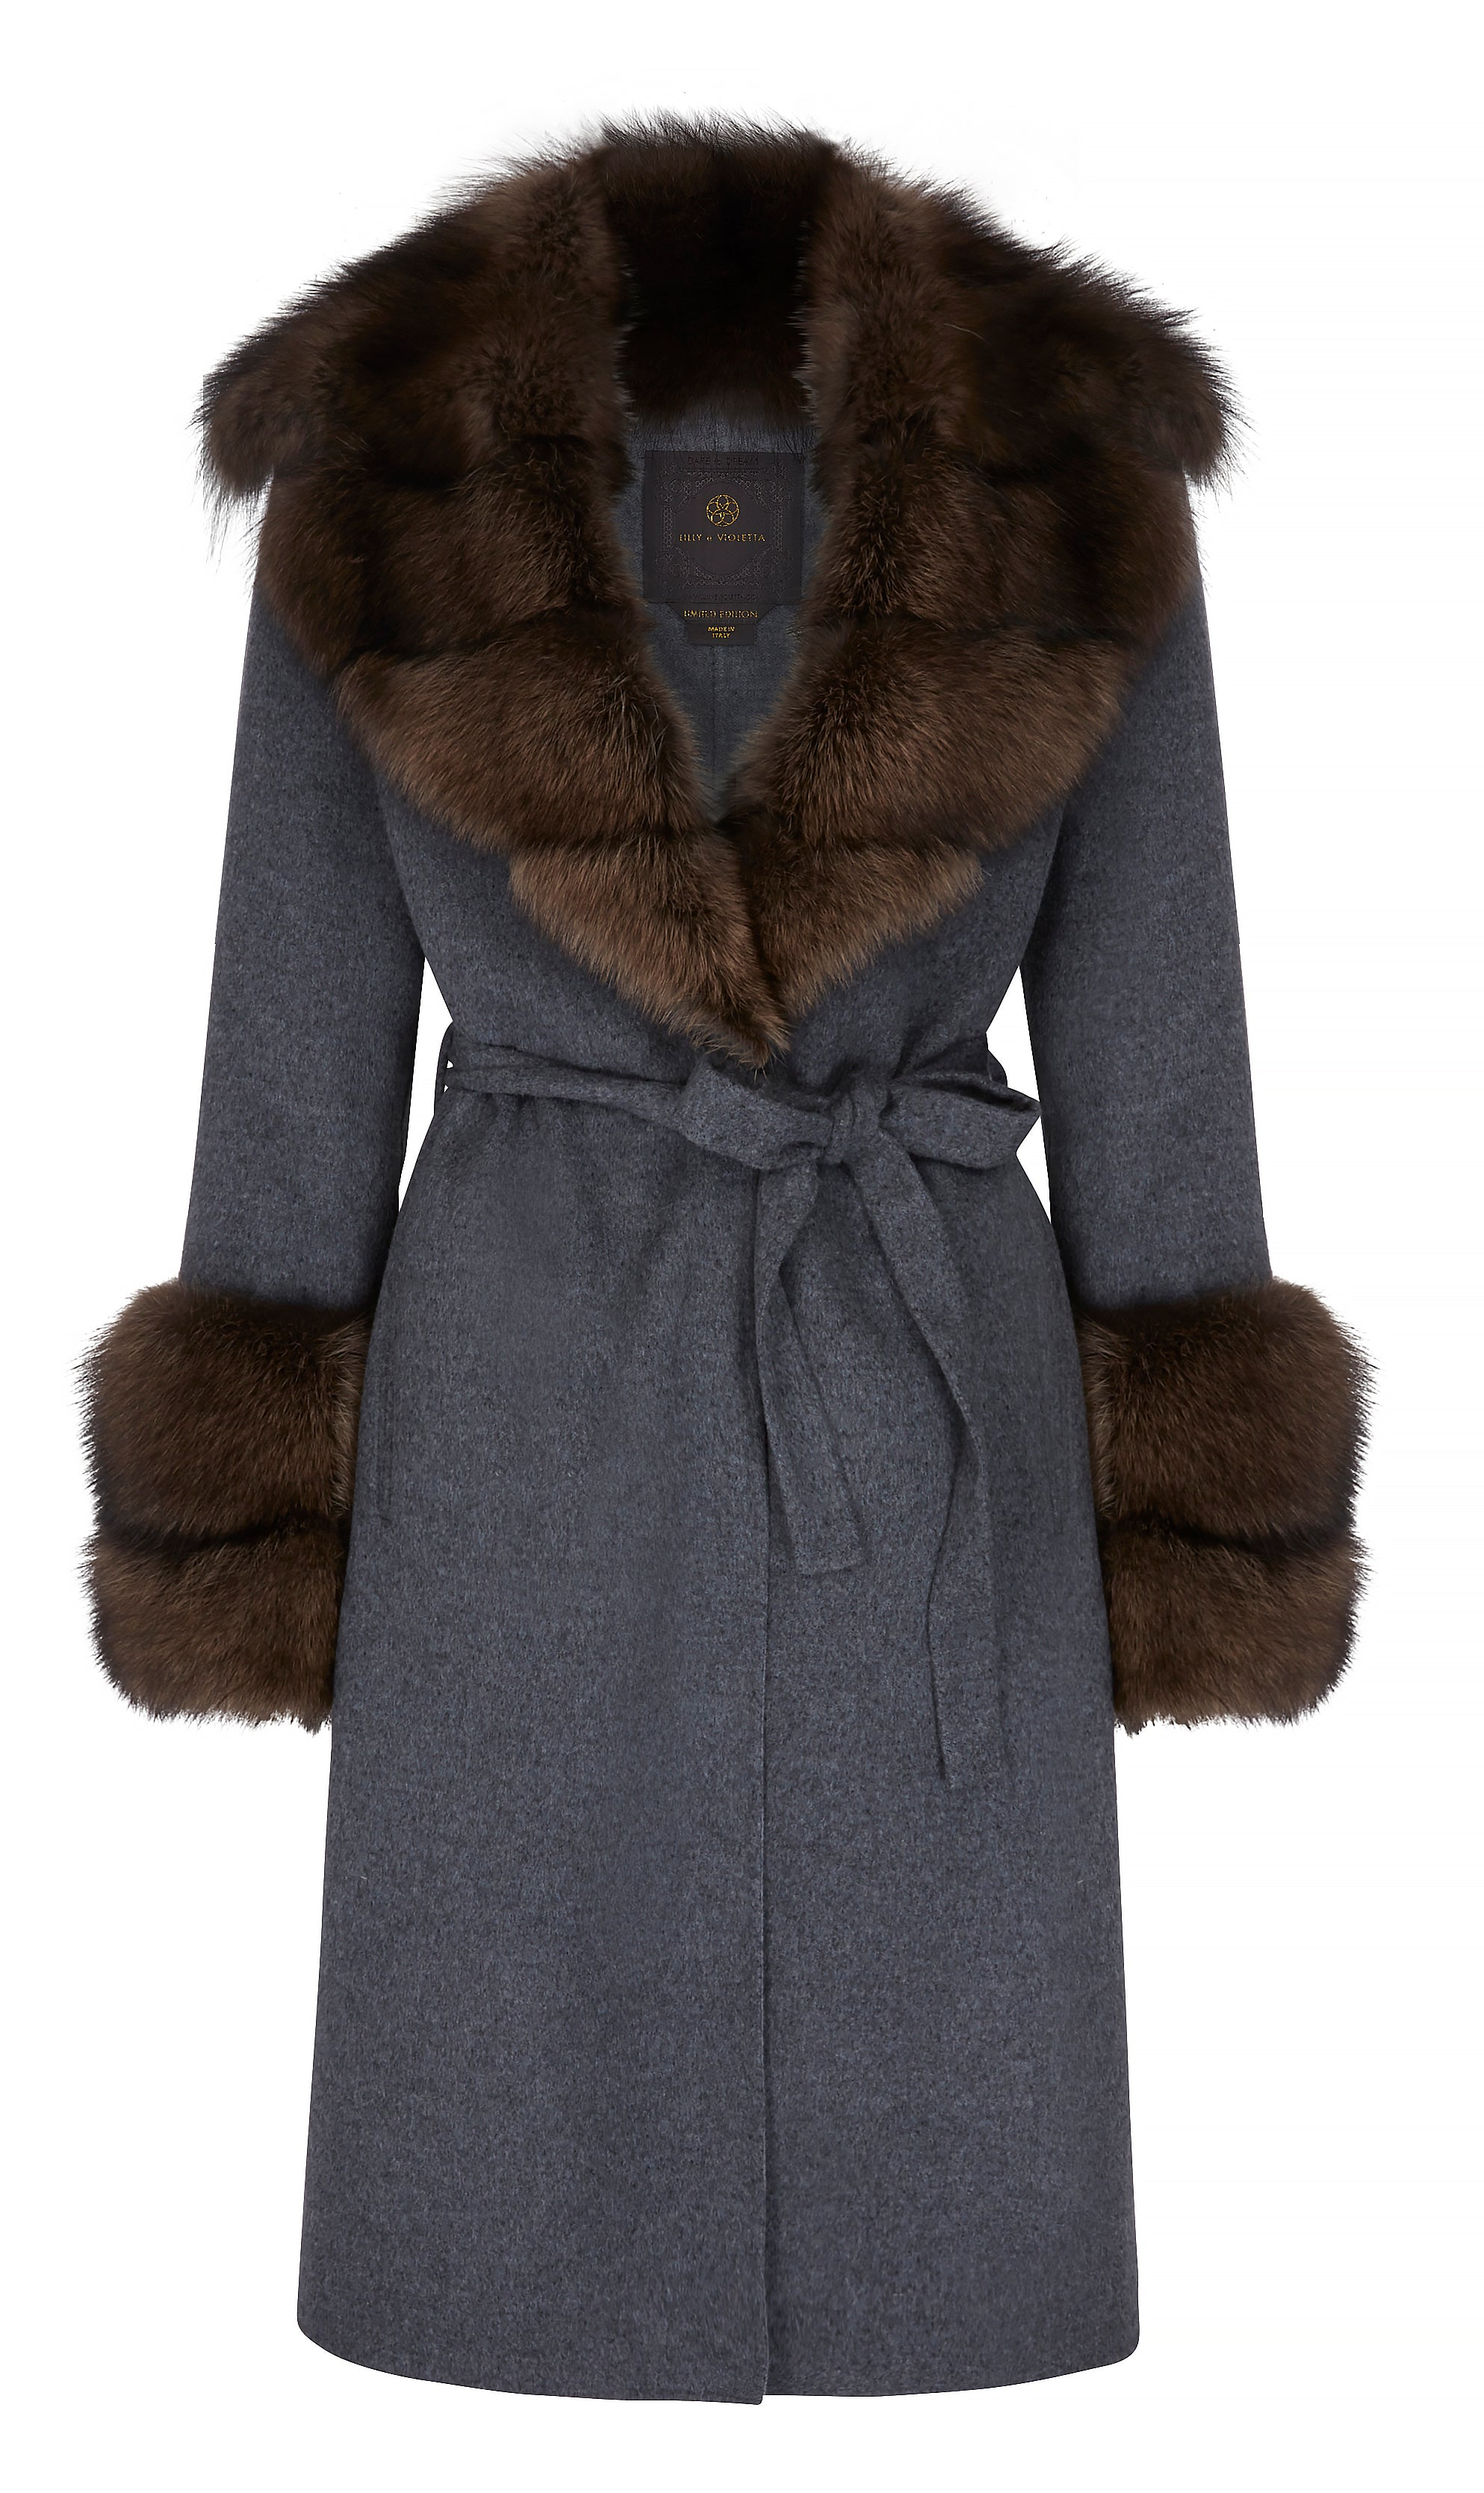 Emilie Cashmere Coat with Fox Fur Collar and Cuffs